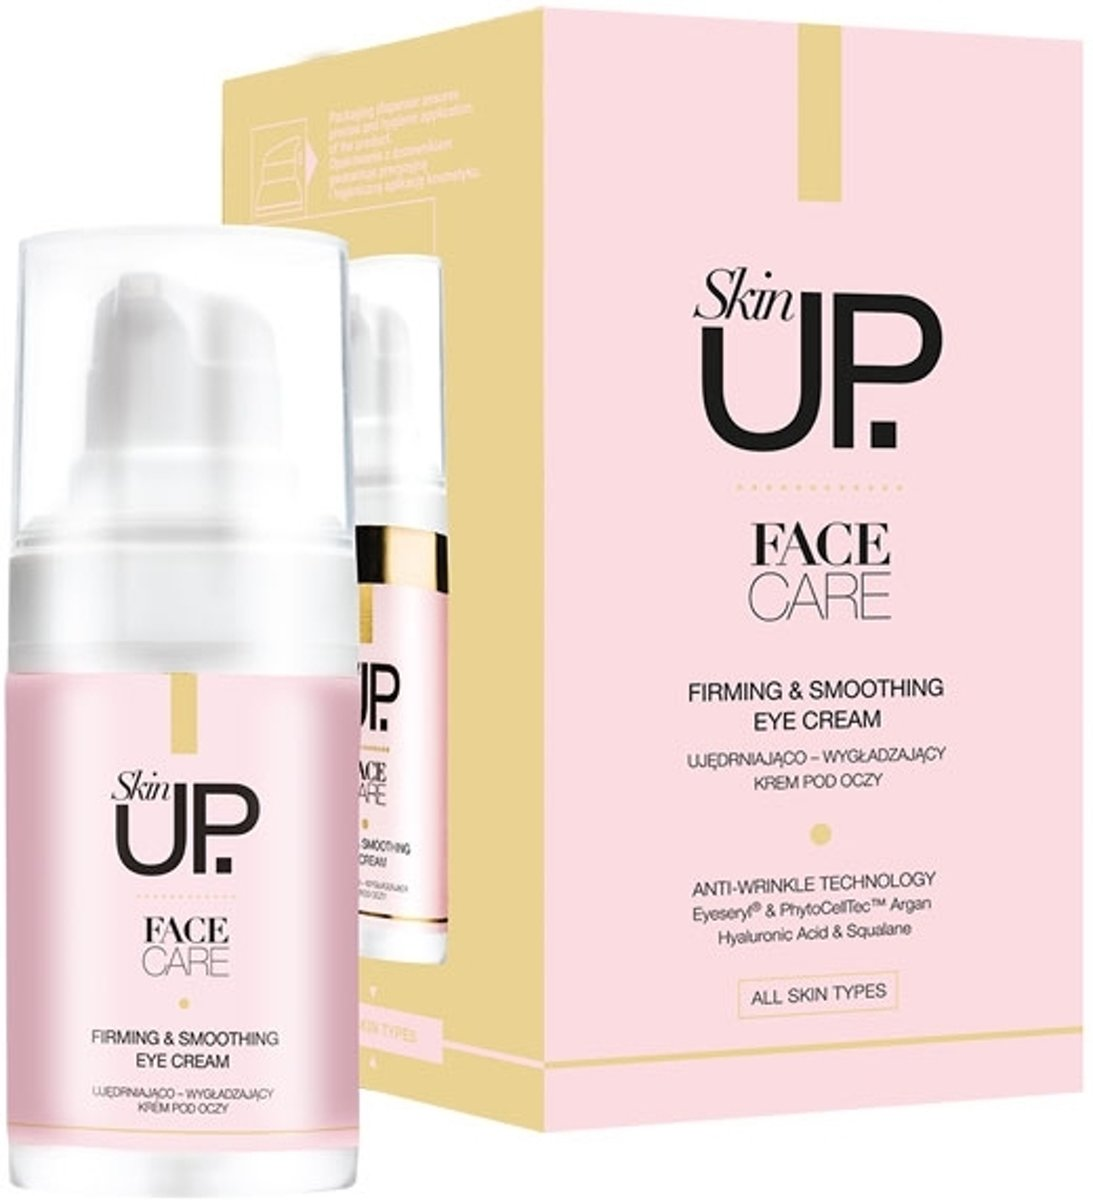 Skin Up Firming And Smoothing Eye Cream